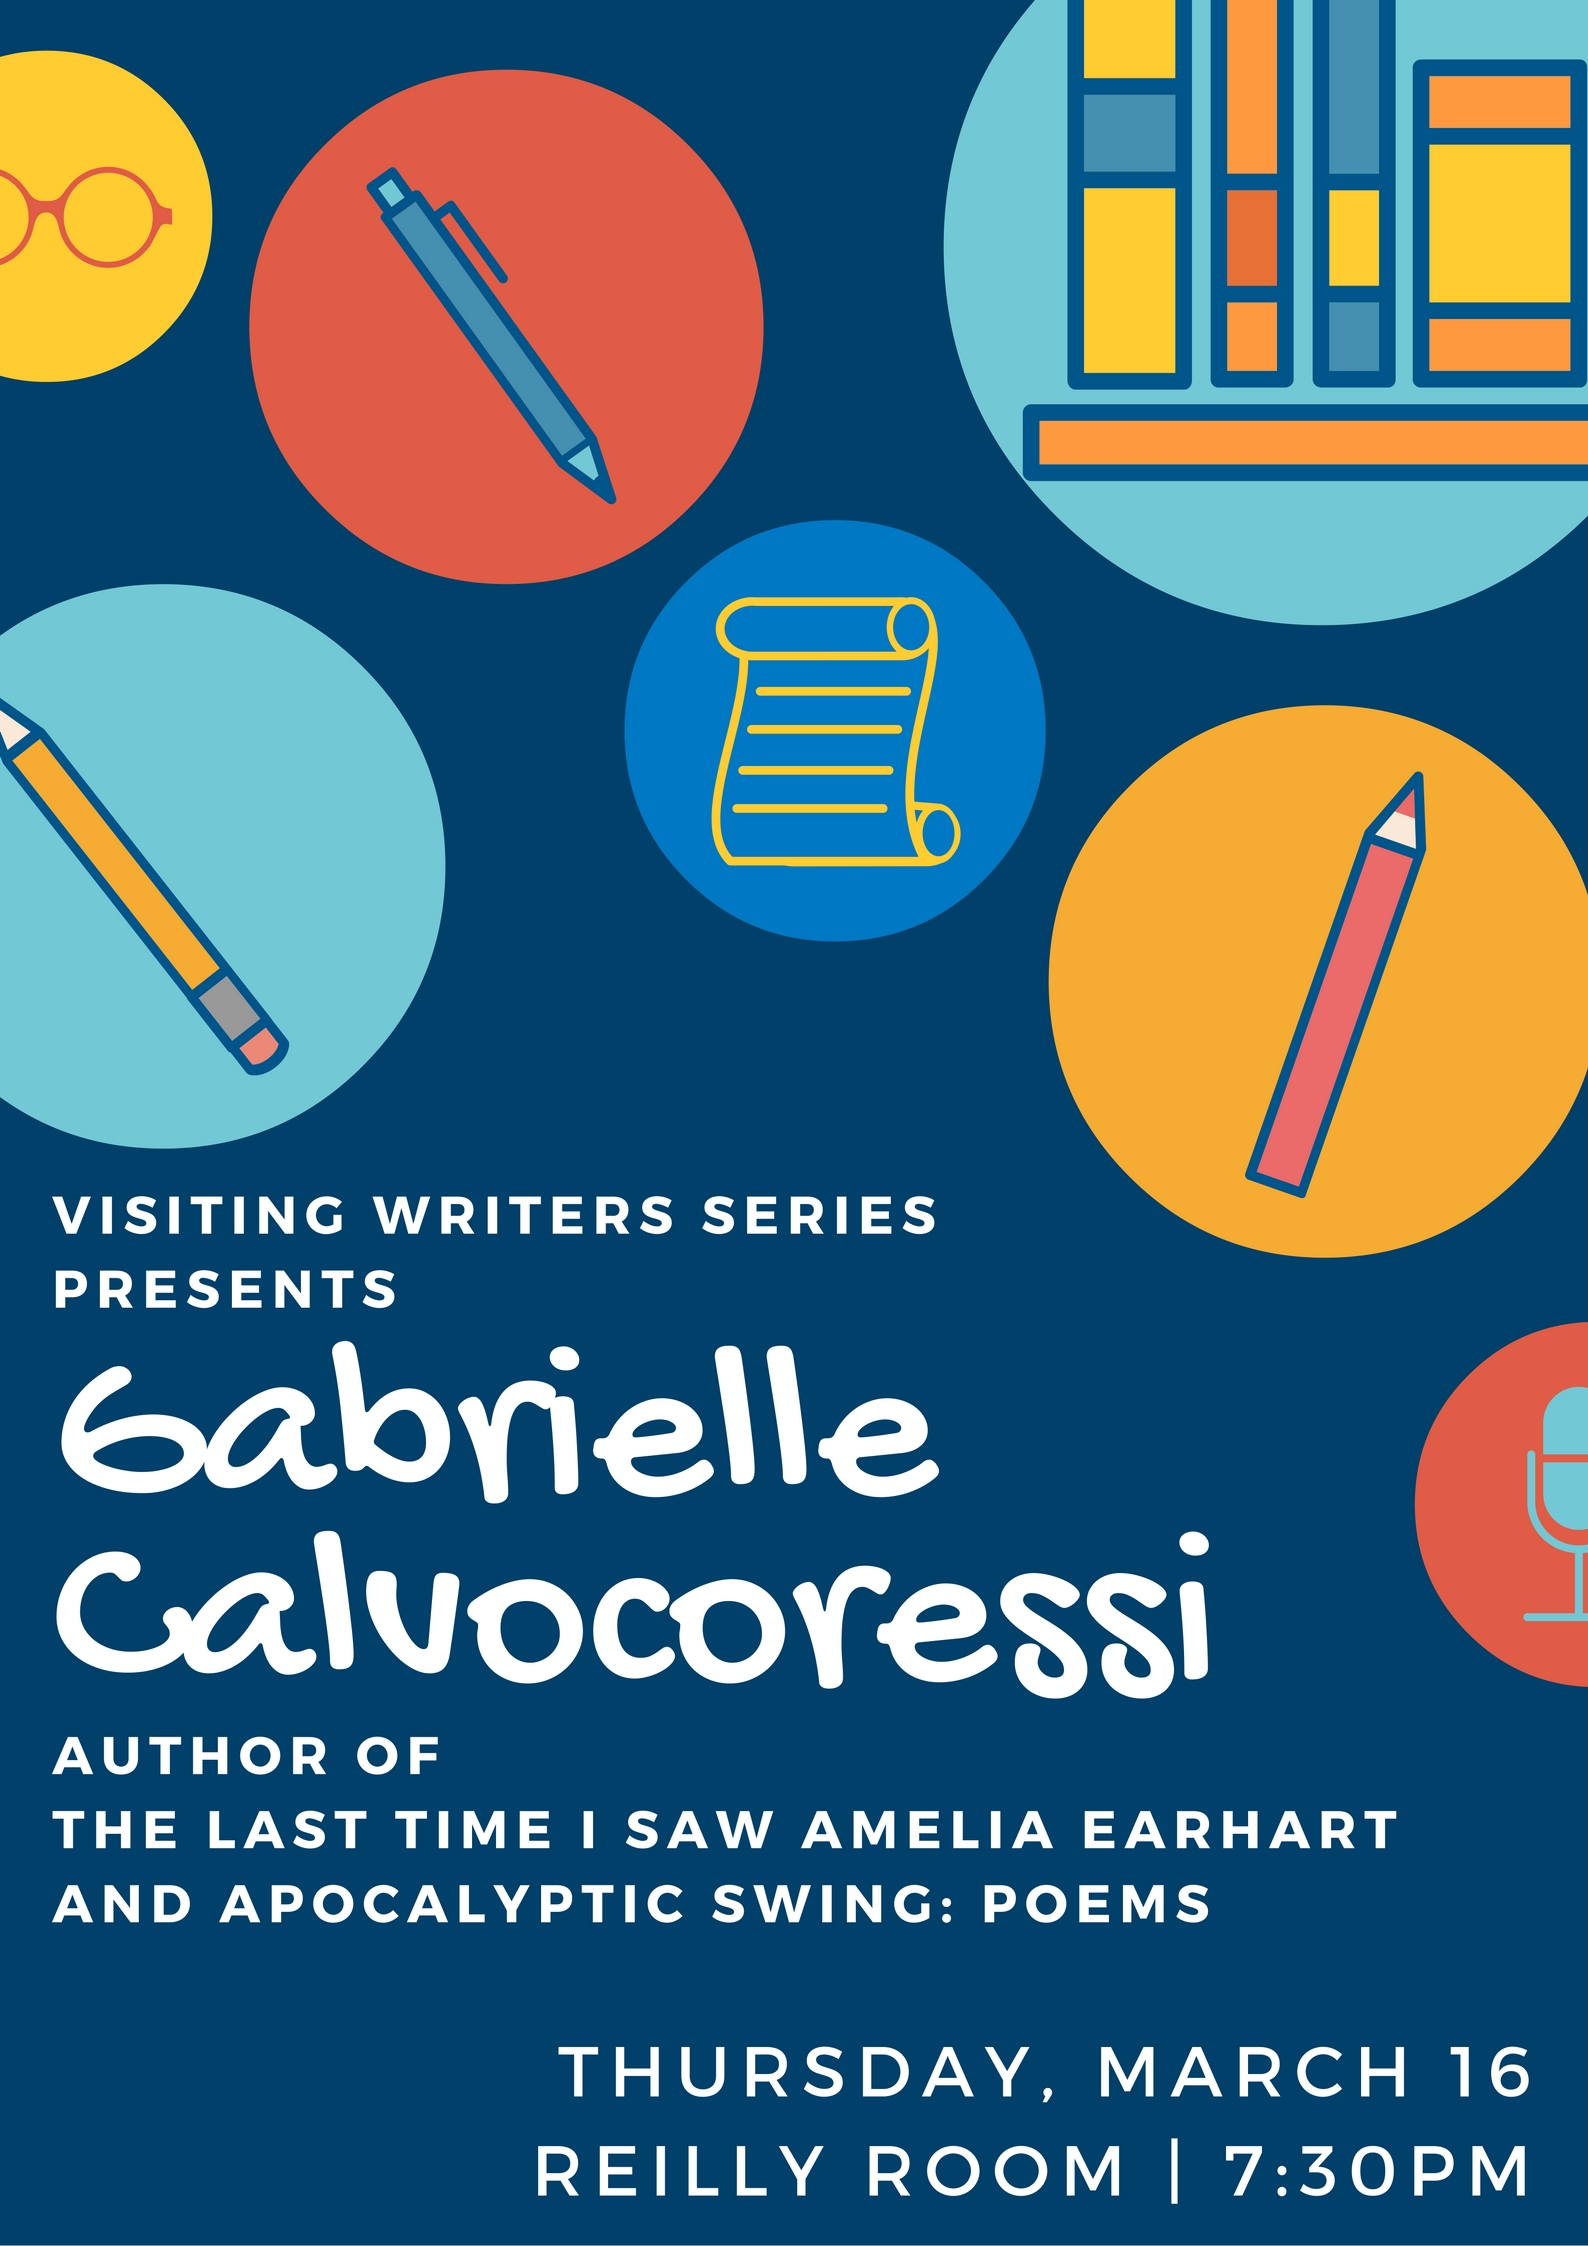 Gabrielle Calvocoressi will be in the Reilly Room on Thursday, March 16, 2017, at 7:30pm.